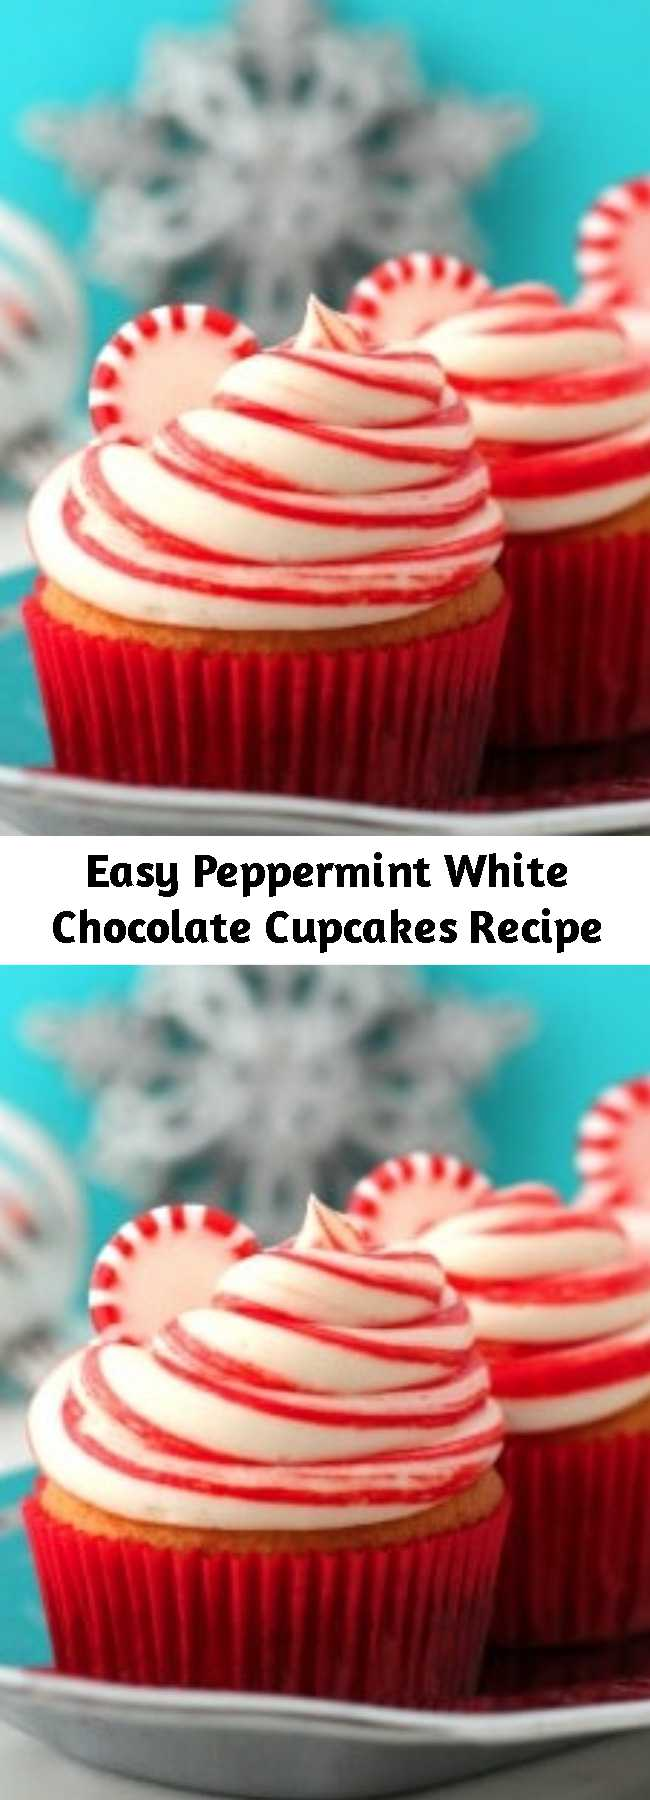 Easy Peppermint White Chocolate Cupcakes Recipe - Made with a base of boxed cake mix (and added melted white chocolate), these Peppermint White Chocolate Cupcakes are super easy to create! The peppermint frosting has red food coloring stripes to make them look like candy canes - so cute!